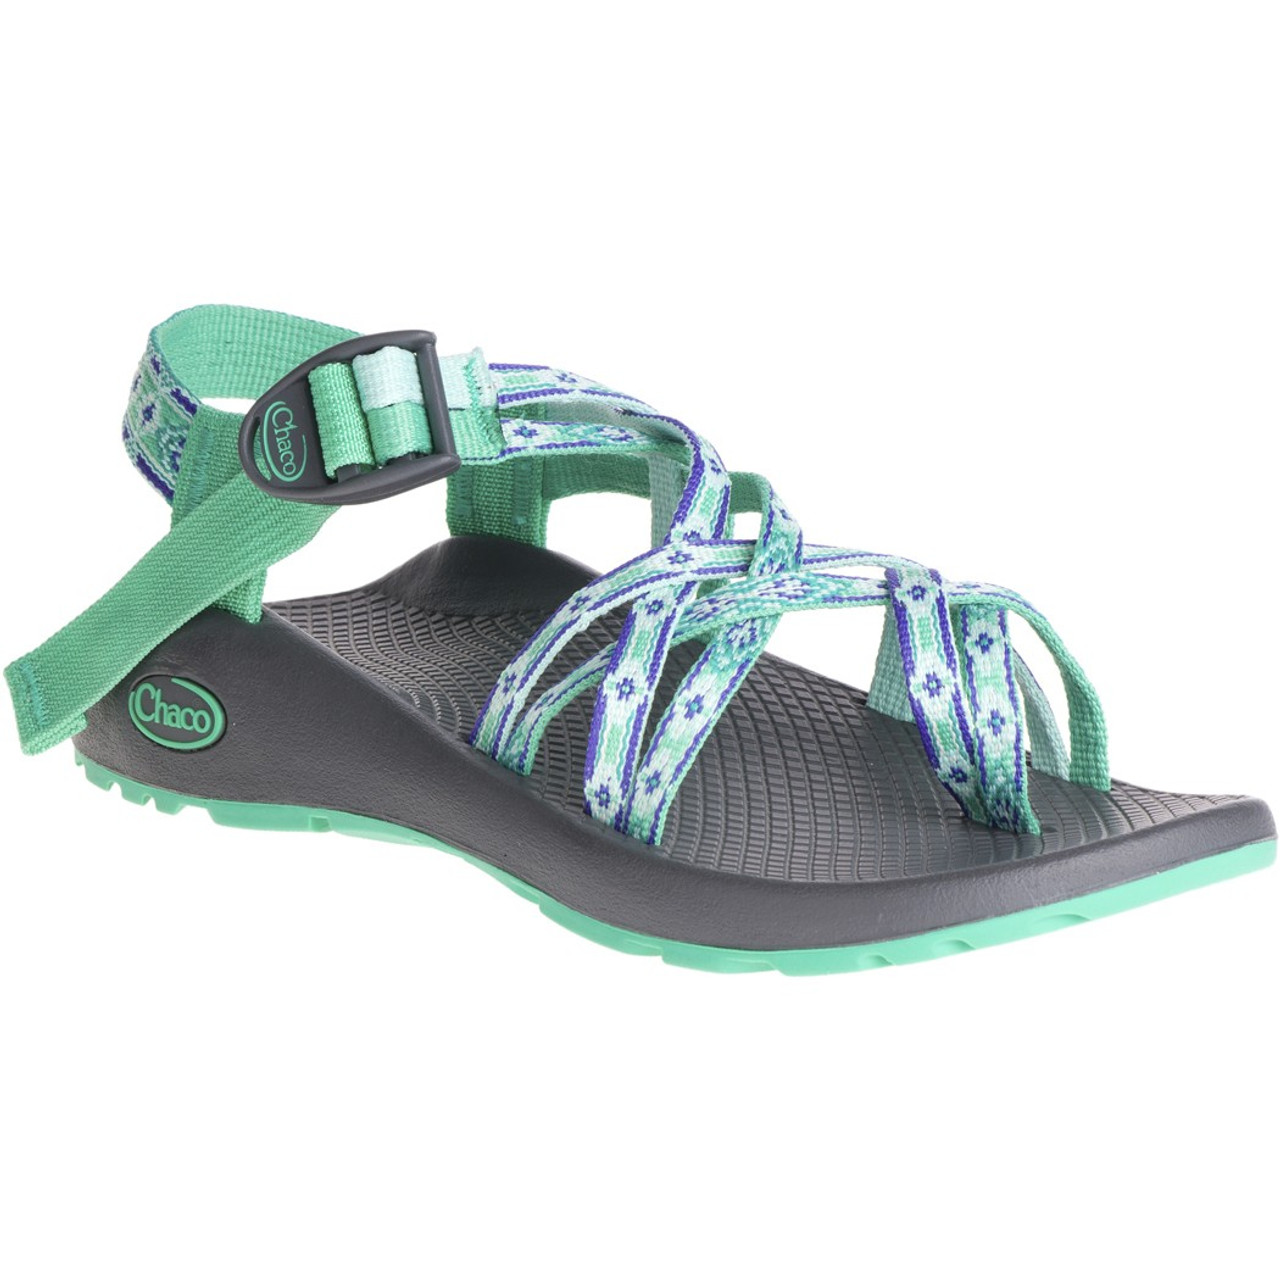 Chacos Women's Sandals - ZX/2 Classic